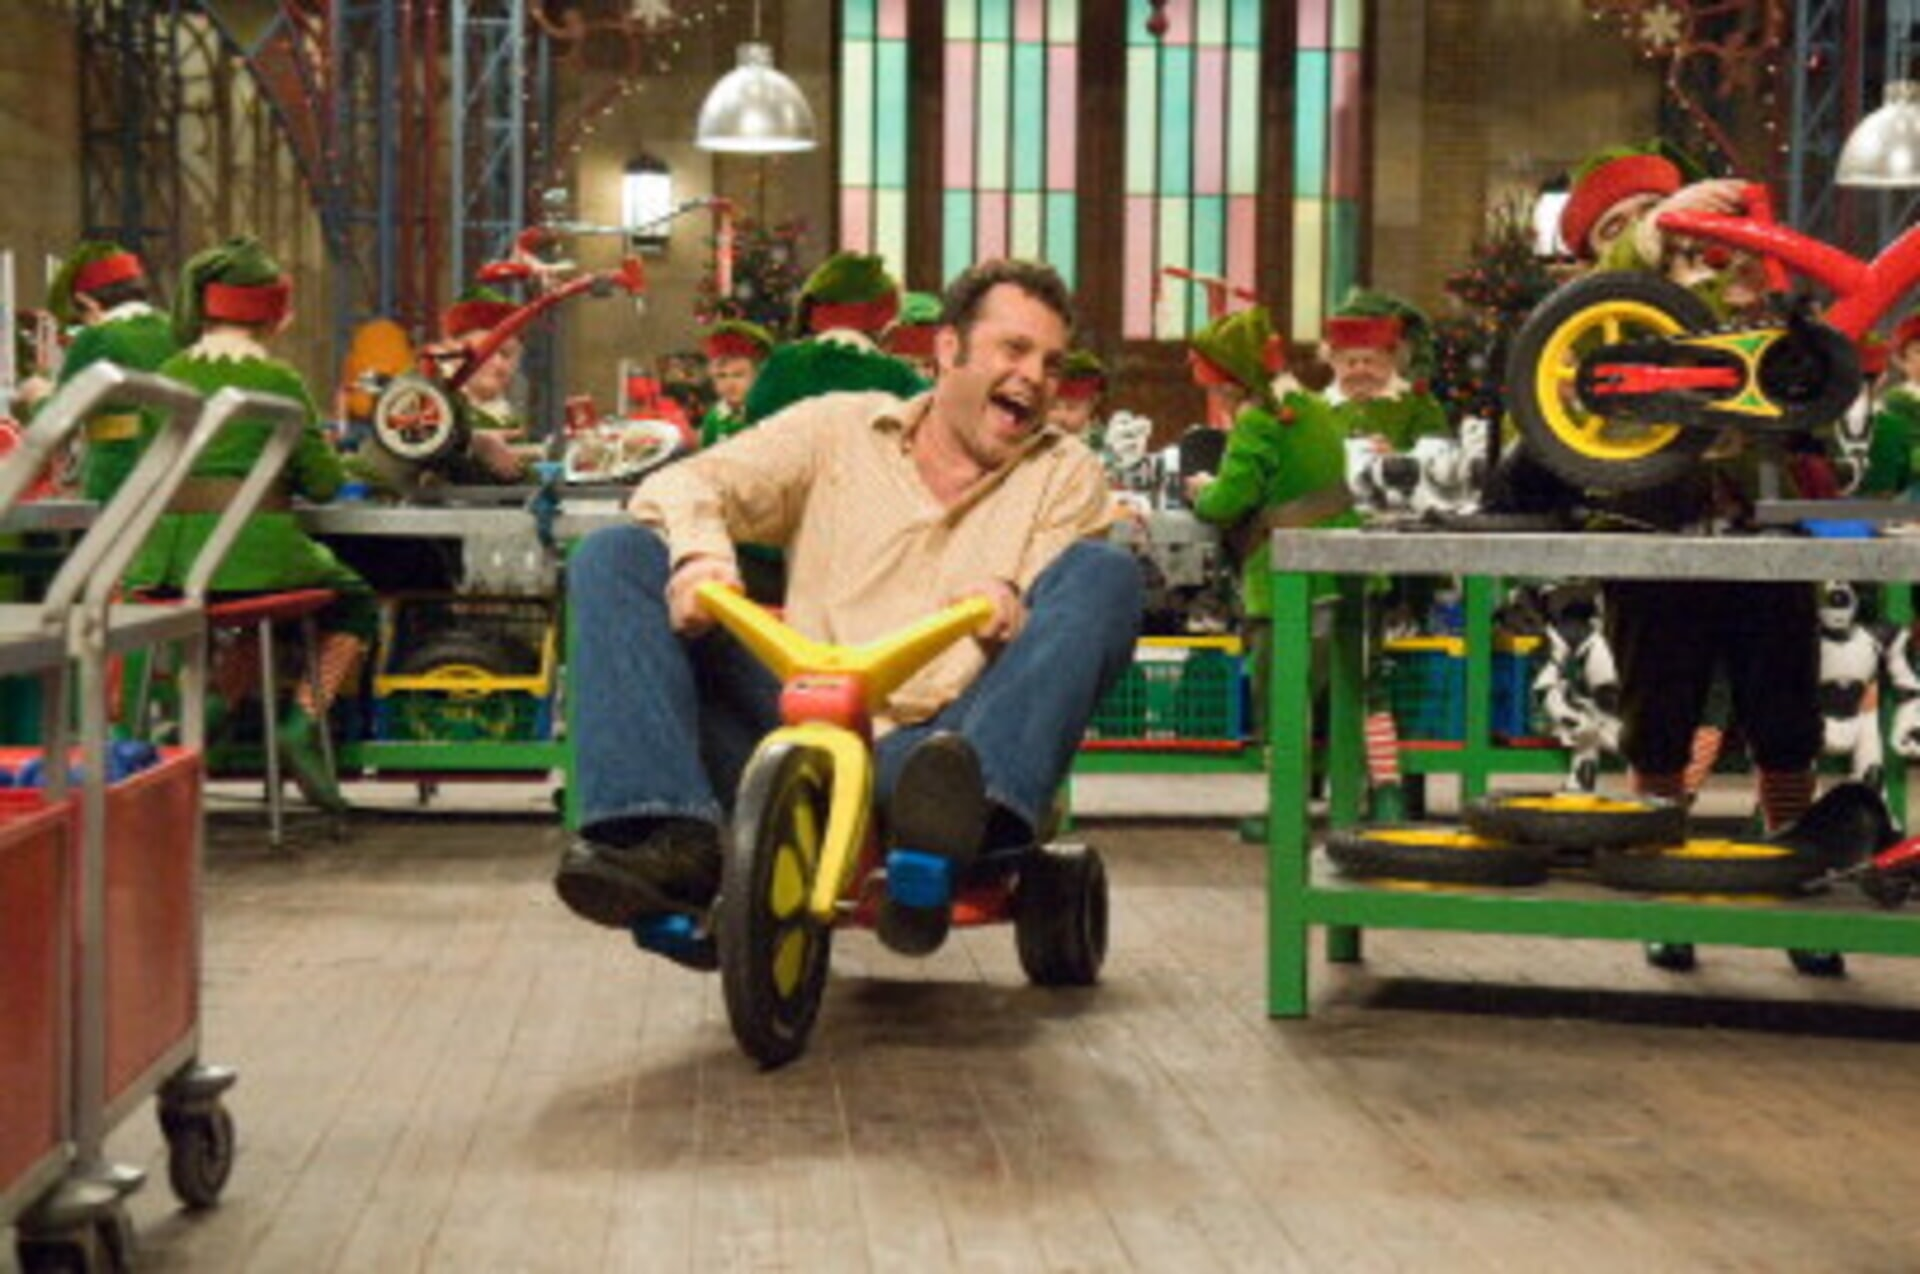 Fred Claus - Image 28